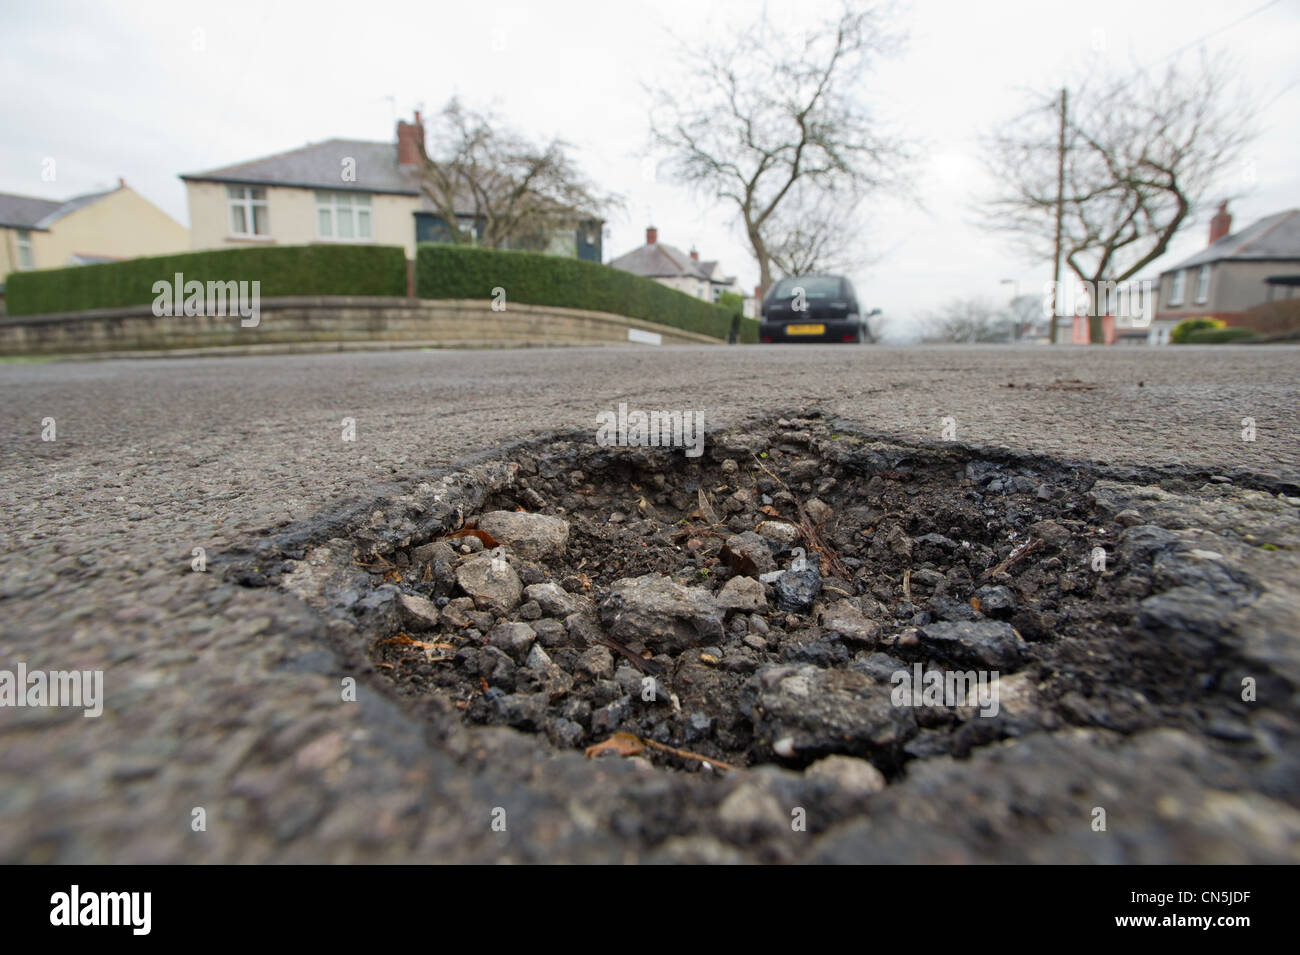 Potholes in the road - Stock Image